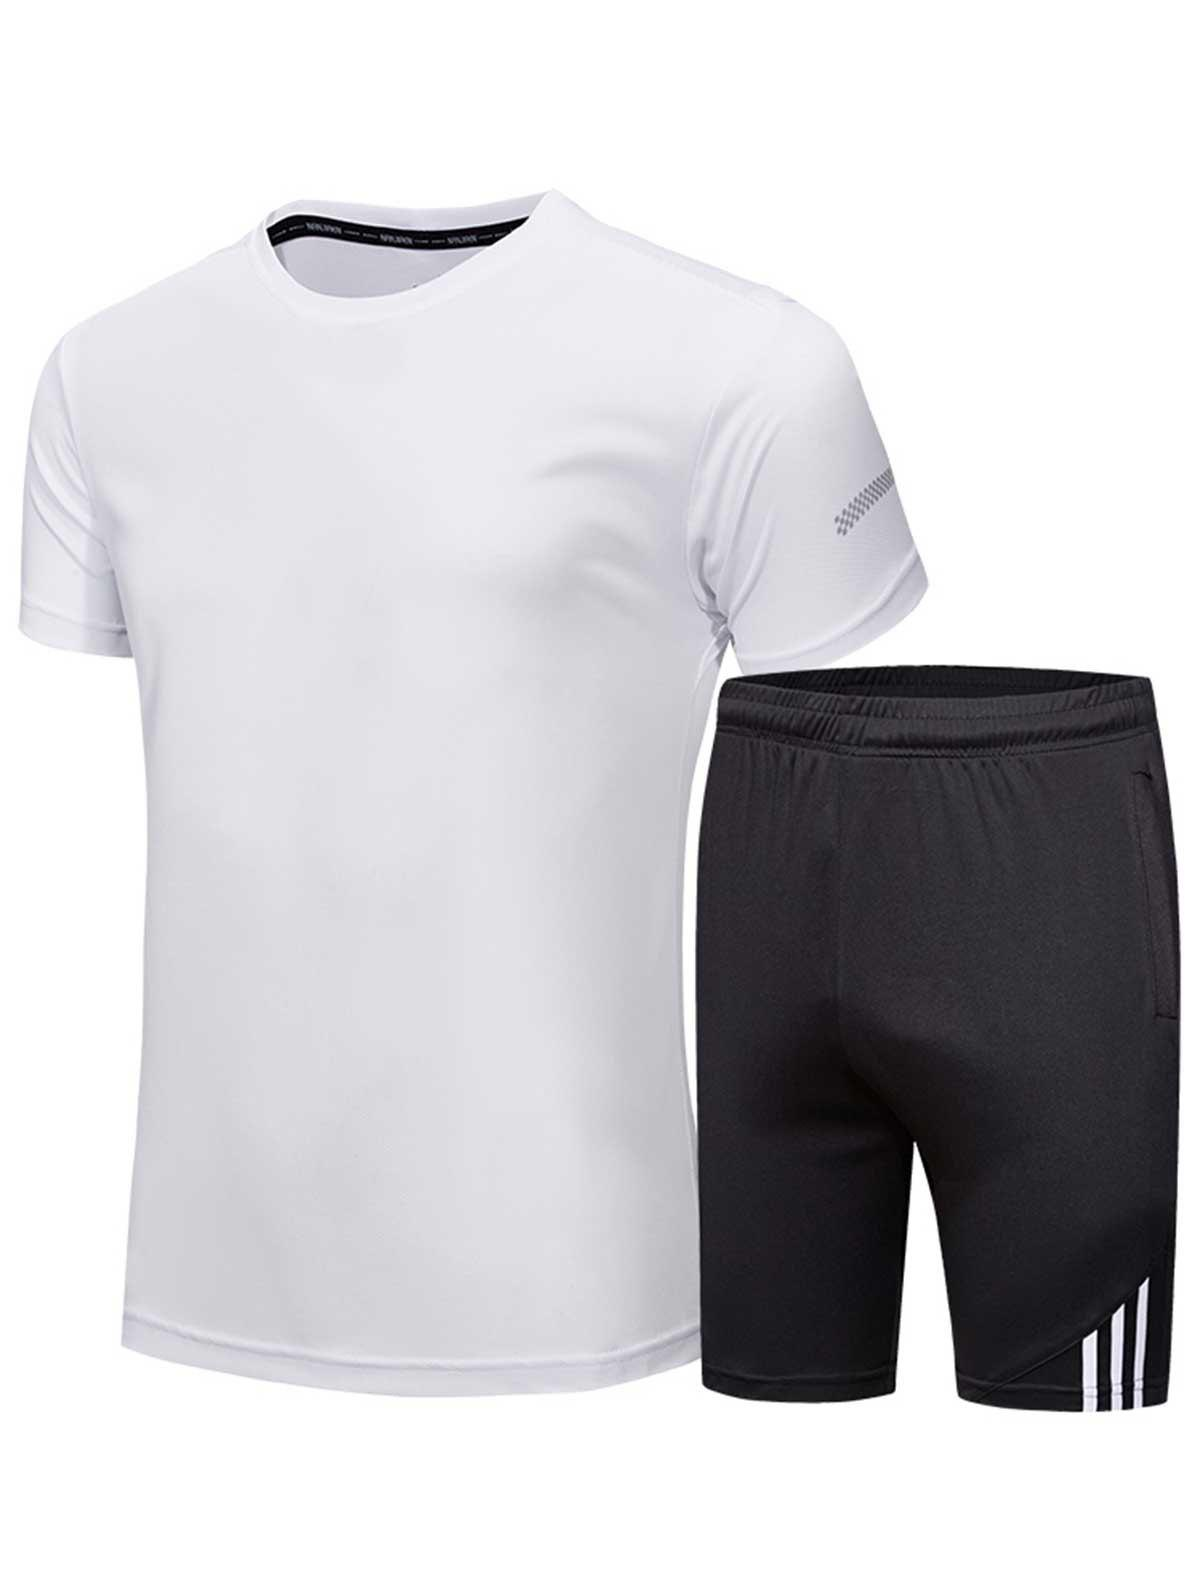 Short Sleeve Tee and Shorts Sportswear - WHITE L